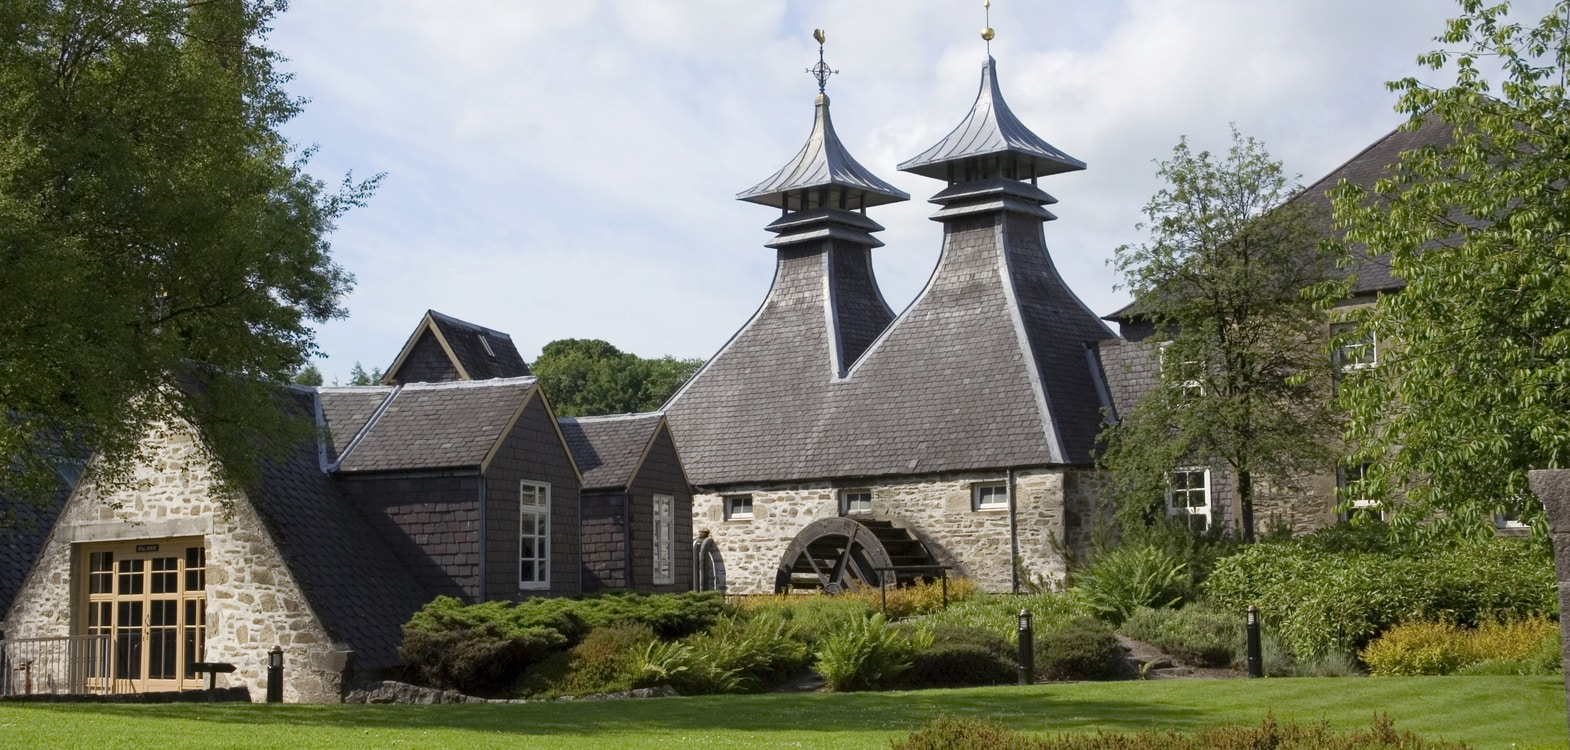 Roof structures on a Scottish distillery within driving distance of Strathallan Guest House